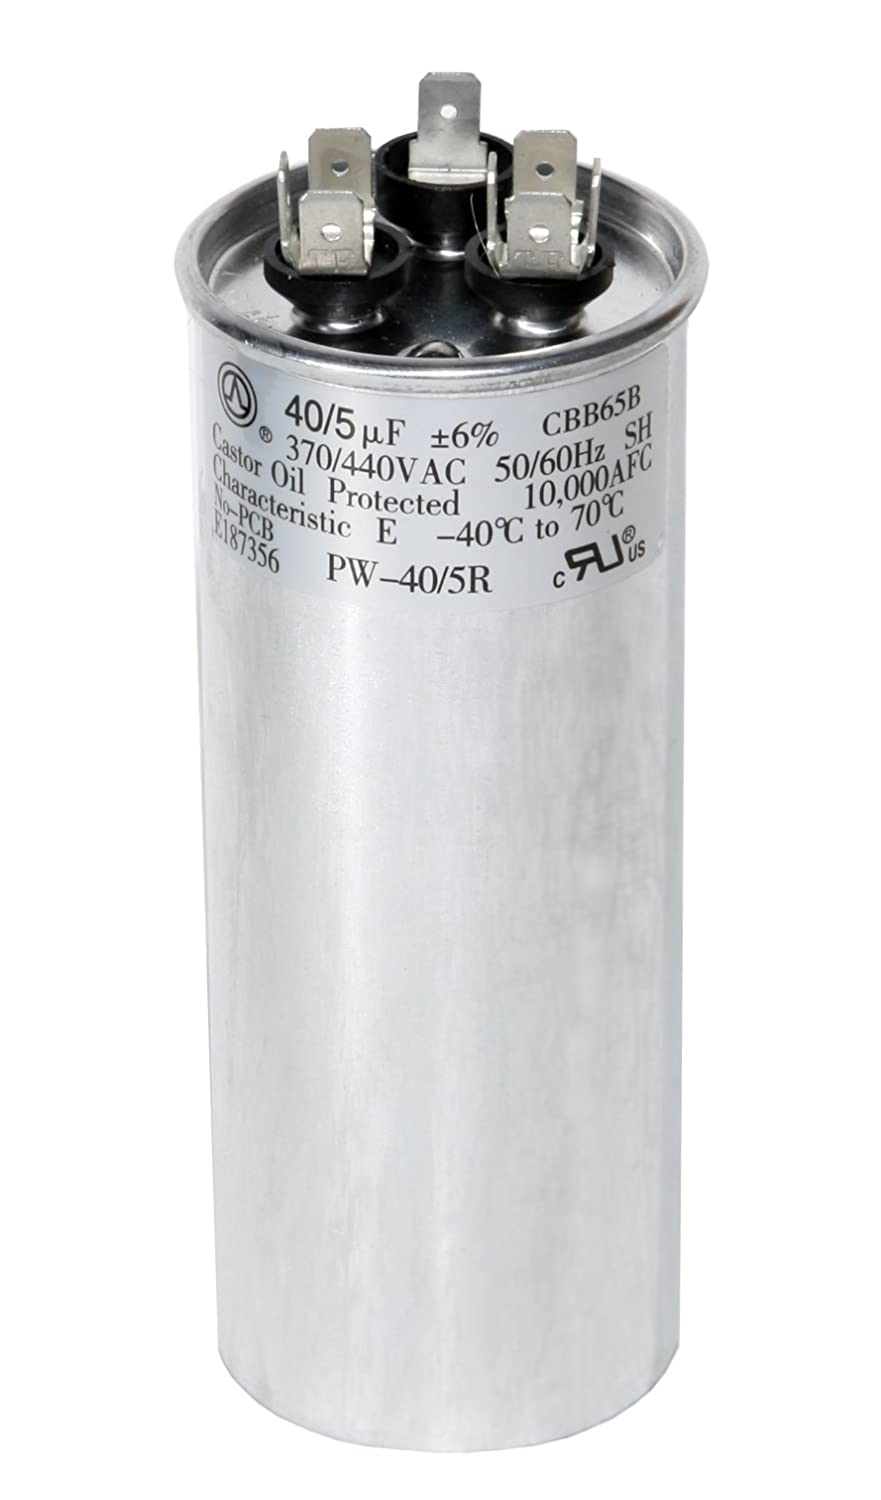 PowerWell 40 + 5 MFD uf PW-40/5/R 370 or 440 Volt Dual Run Round Capacitor for Condenser Straight Cool or Heat Pump Air Conditioner 40/5 Micro Farad - Guaranteed to Last 5 Years